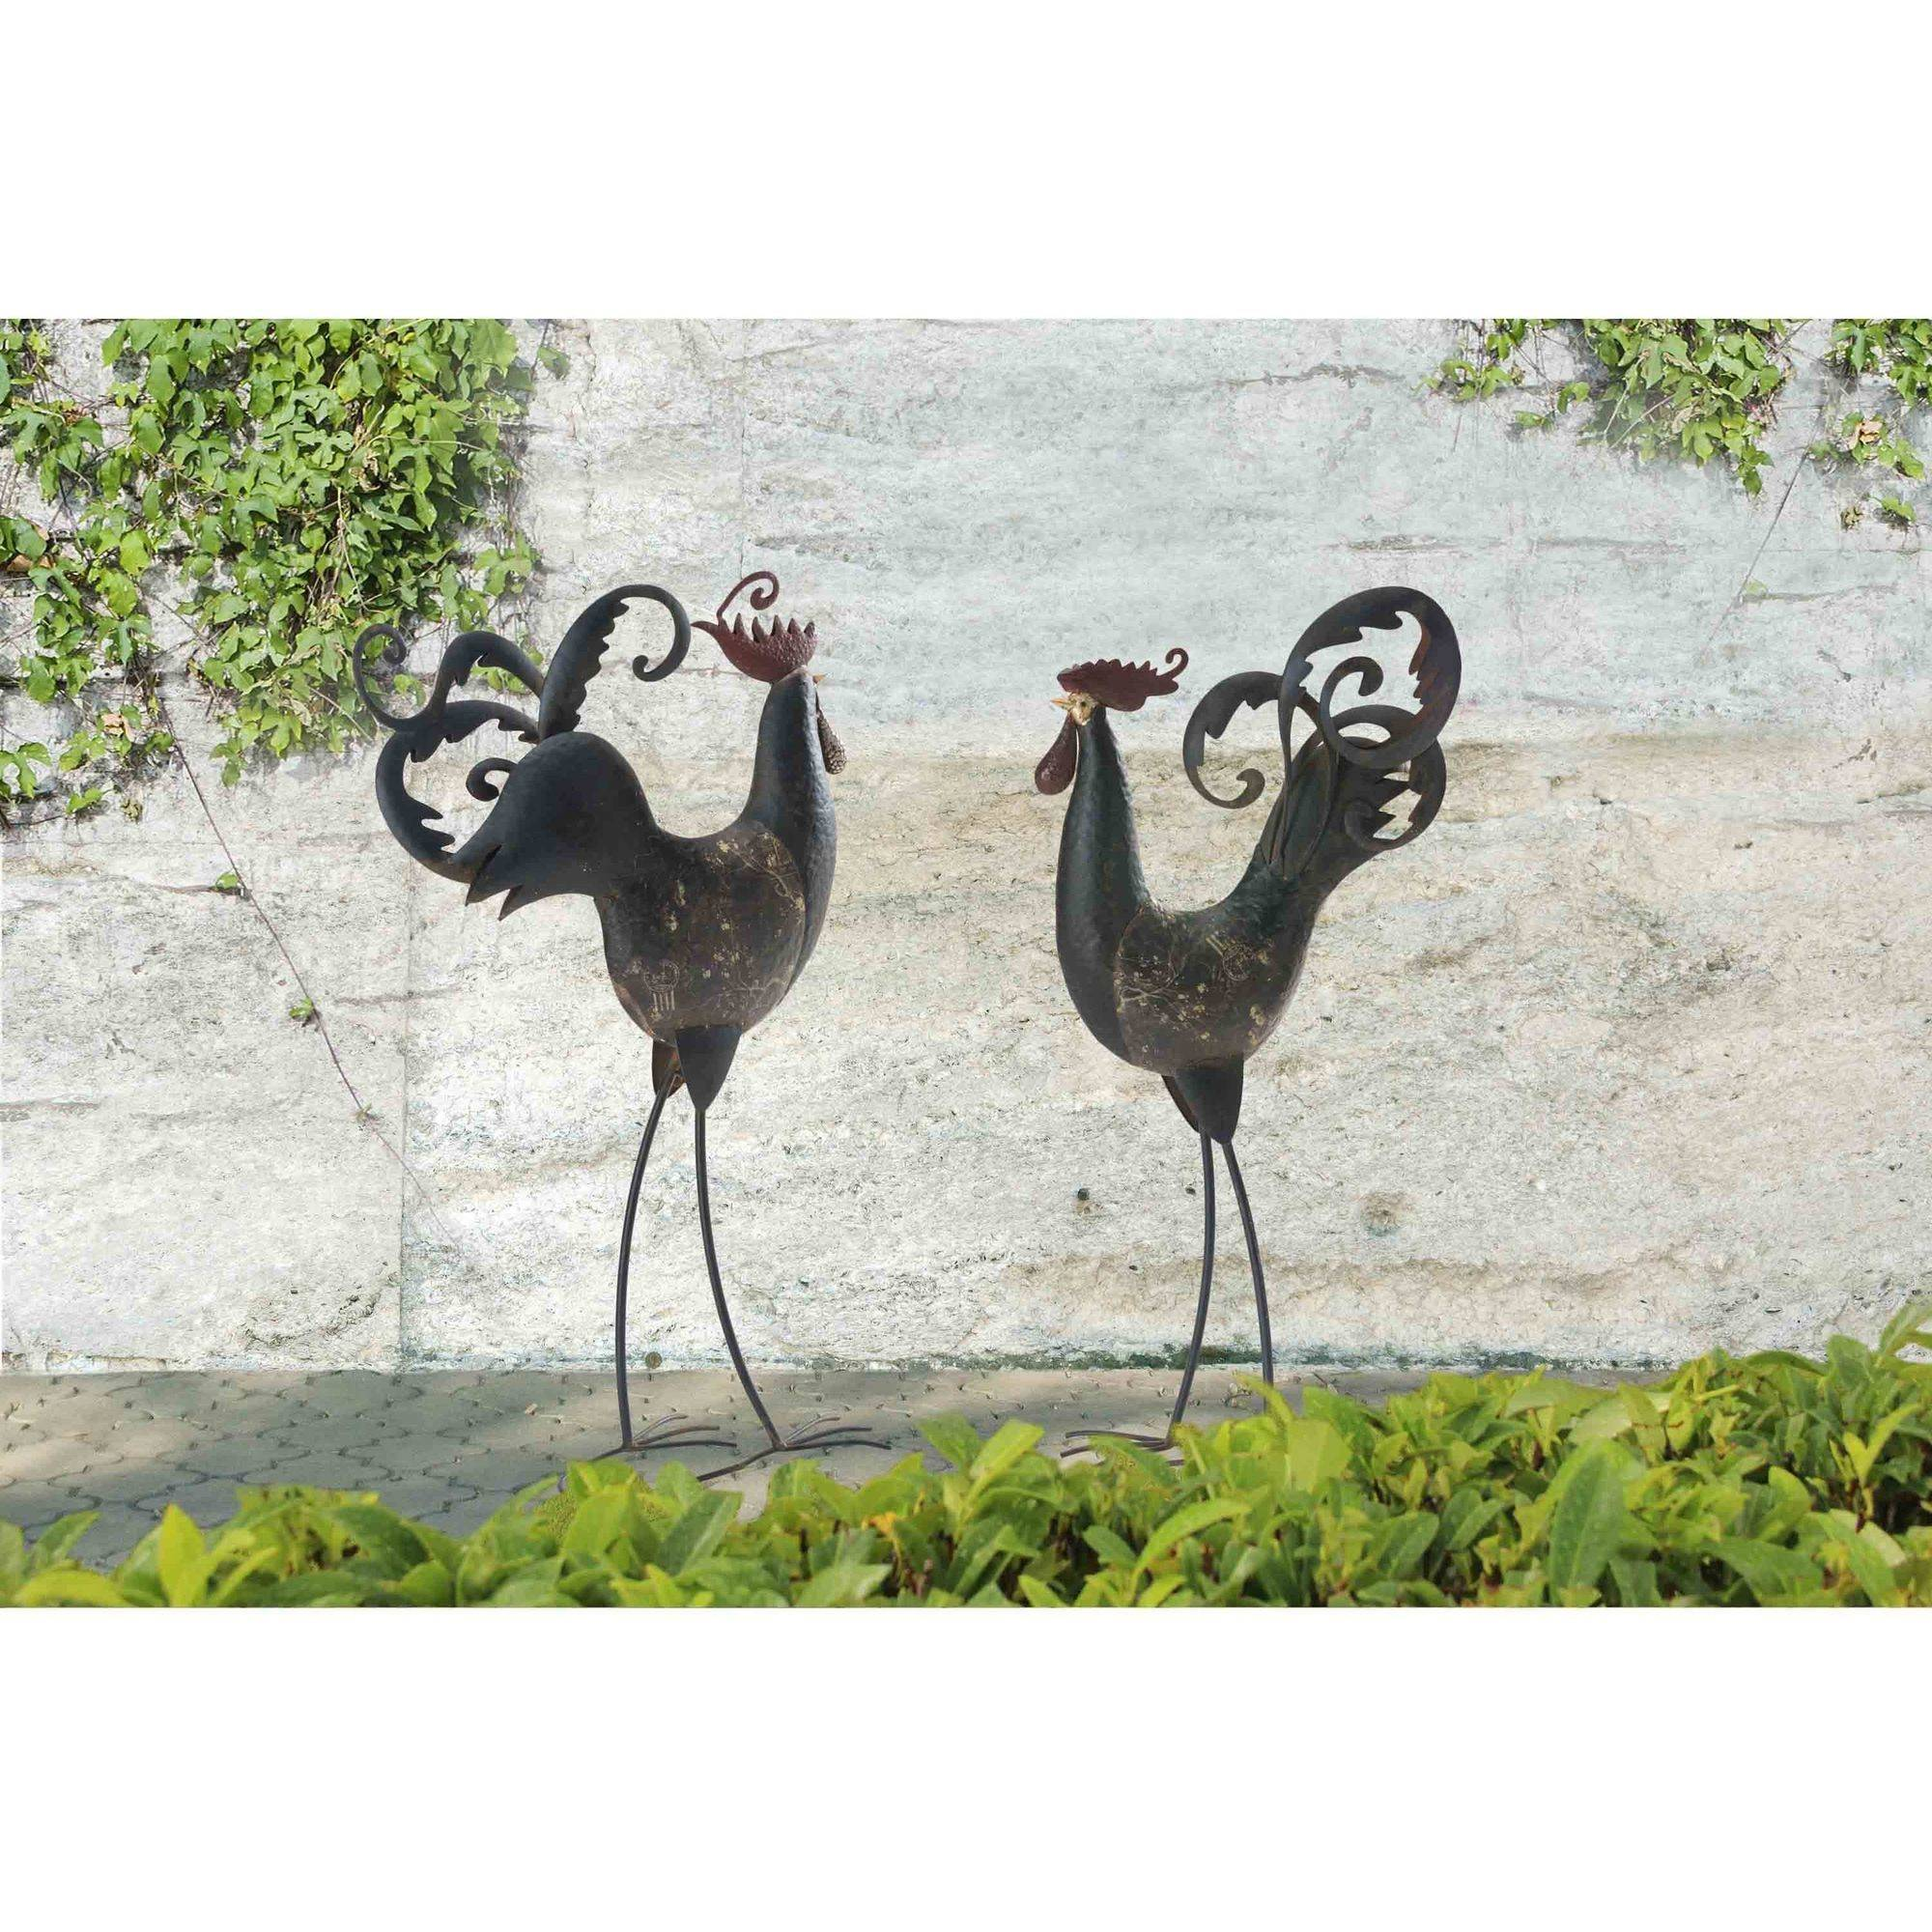 """Sunjoy 110309060 Two Tall Rooster and Hen Iron Garden Statues, Set of 2, Rustic, 32""""... by Garden Statues"""